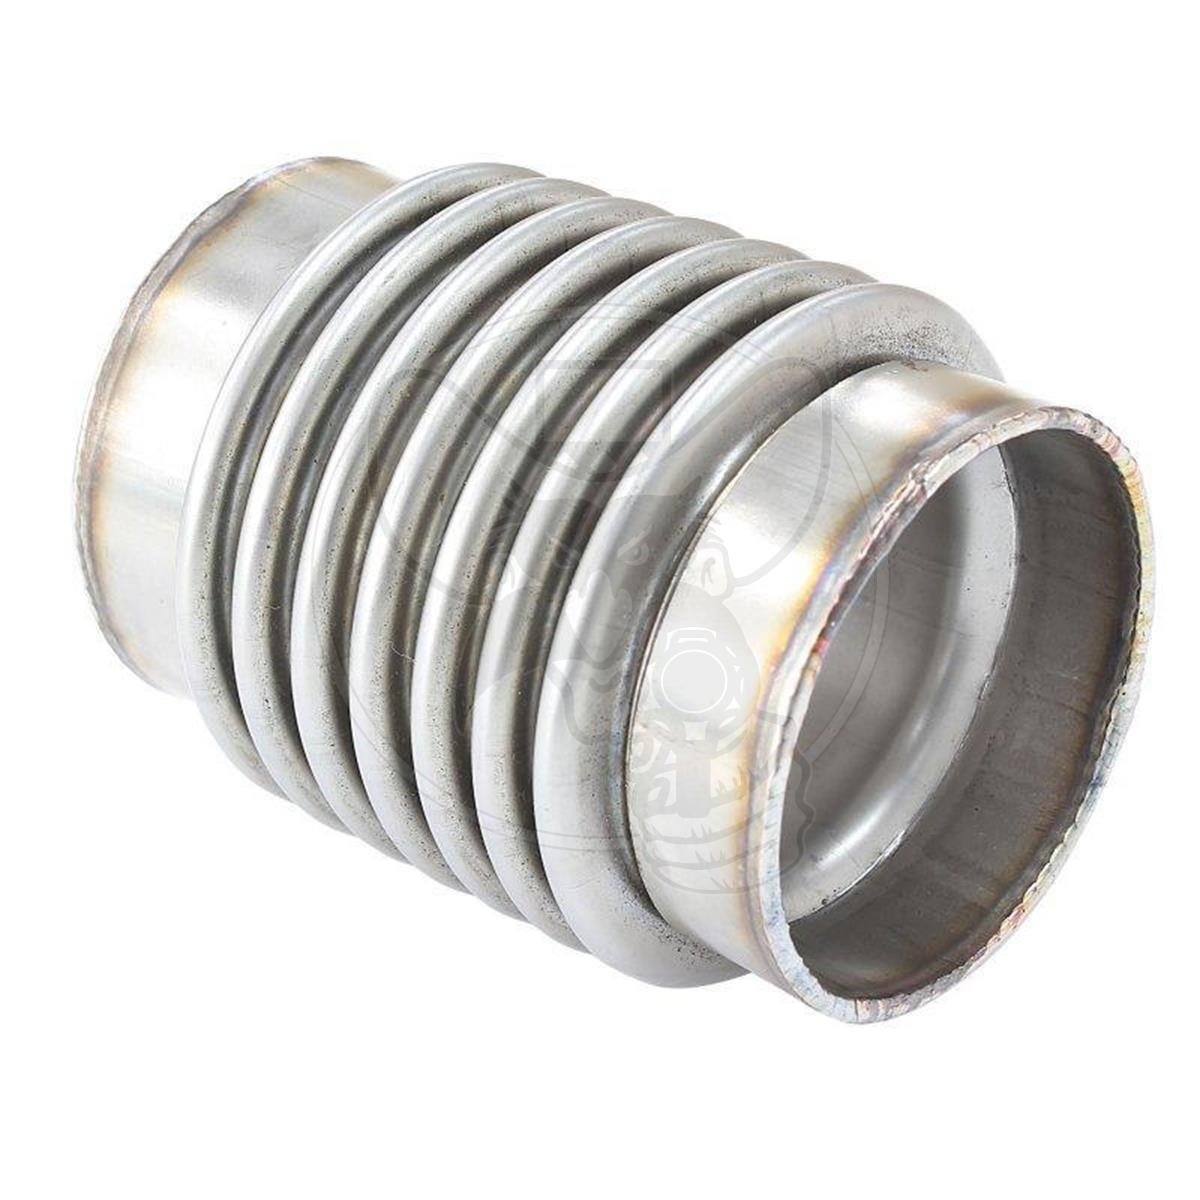 af9500 1750 aeroflow exhaust flex joint 1 3 4 od x 4 long stainless steel